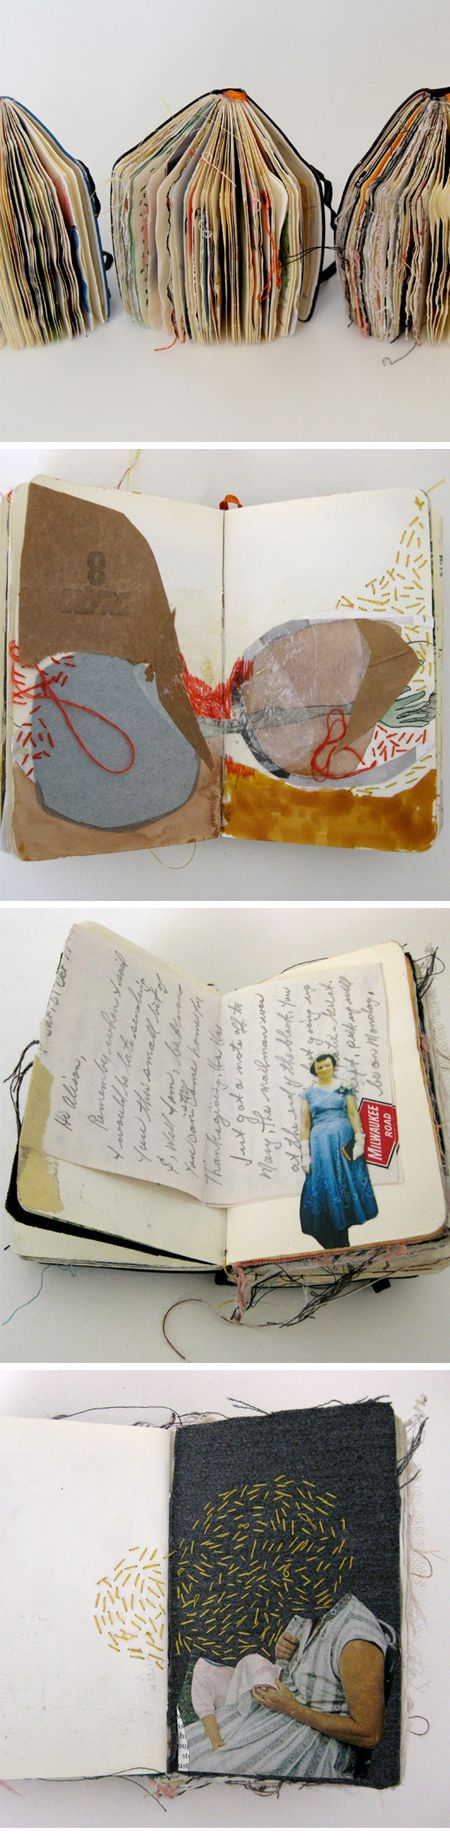 Alison Worman sketchbook - fabric, threads, paper http://alofthesun.blogspot.com/ #stitching #mixed_media #art